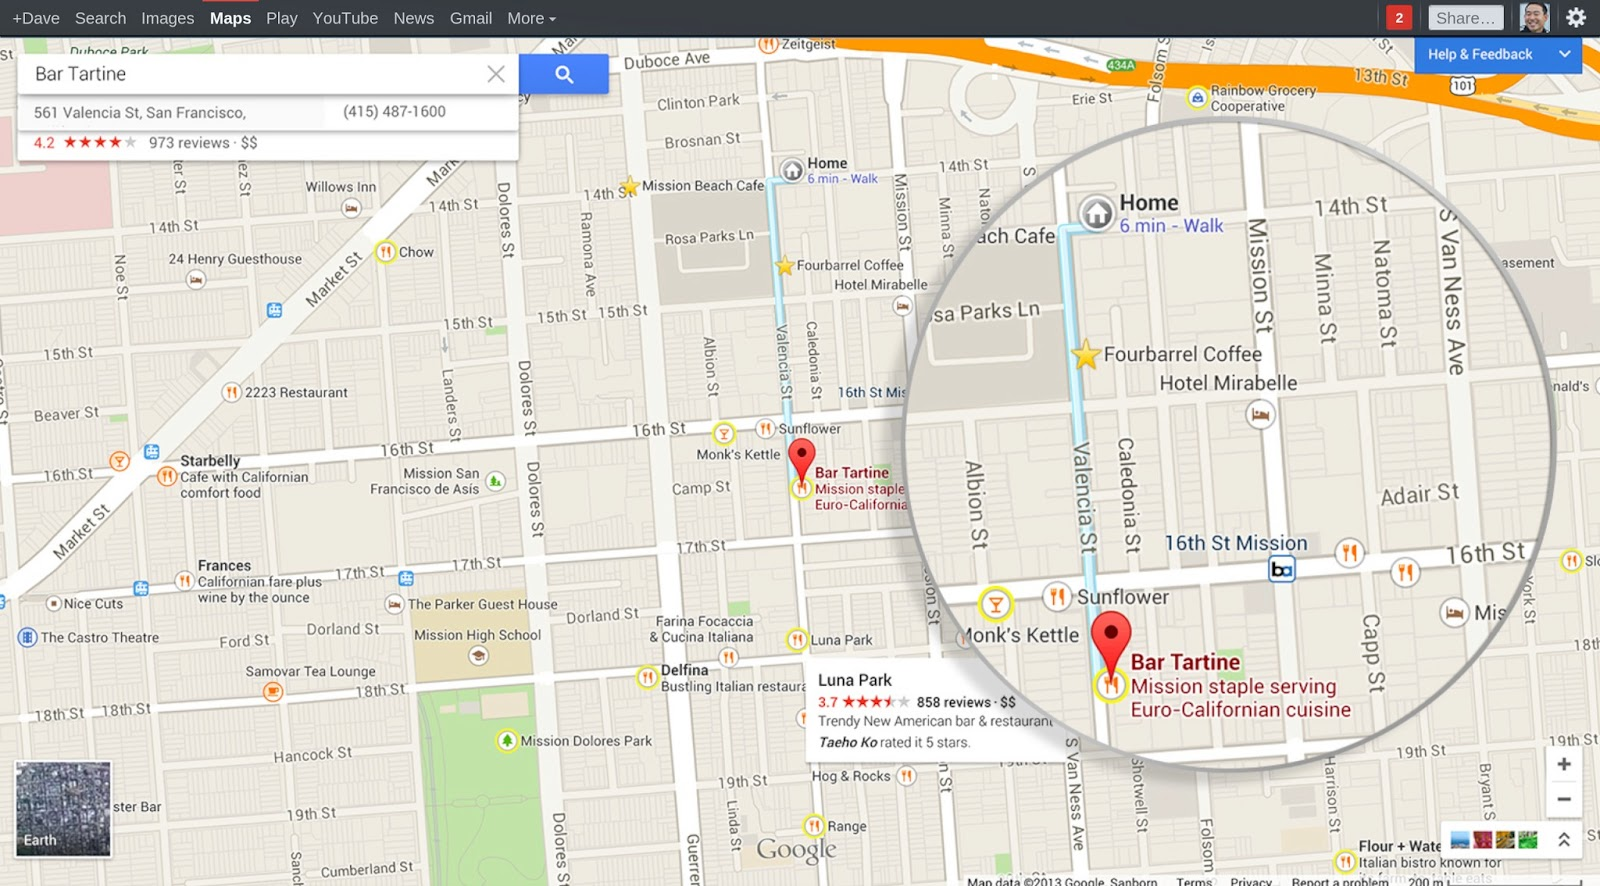 Google has rebuilt Maps from 'ground up,' with iPad version coming this summer | VentureBeat ...